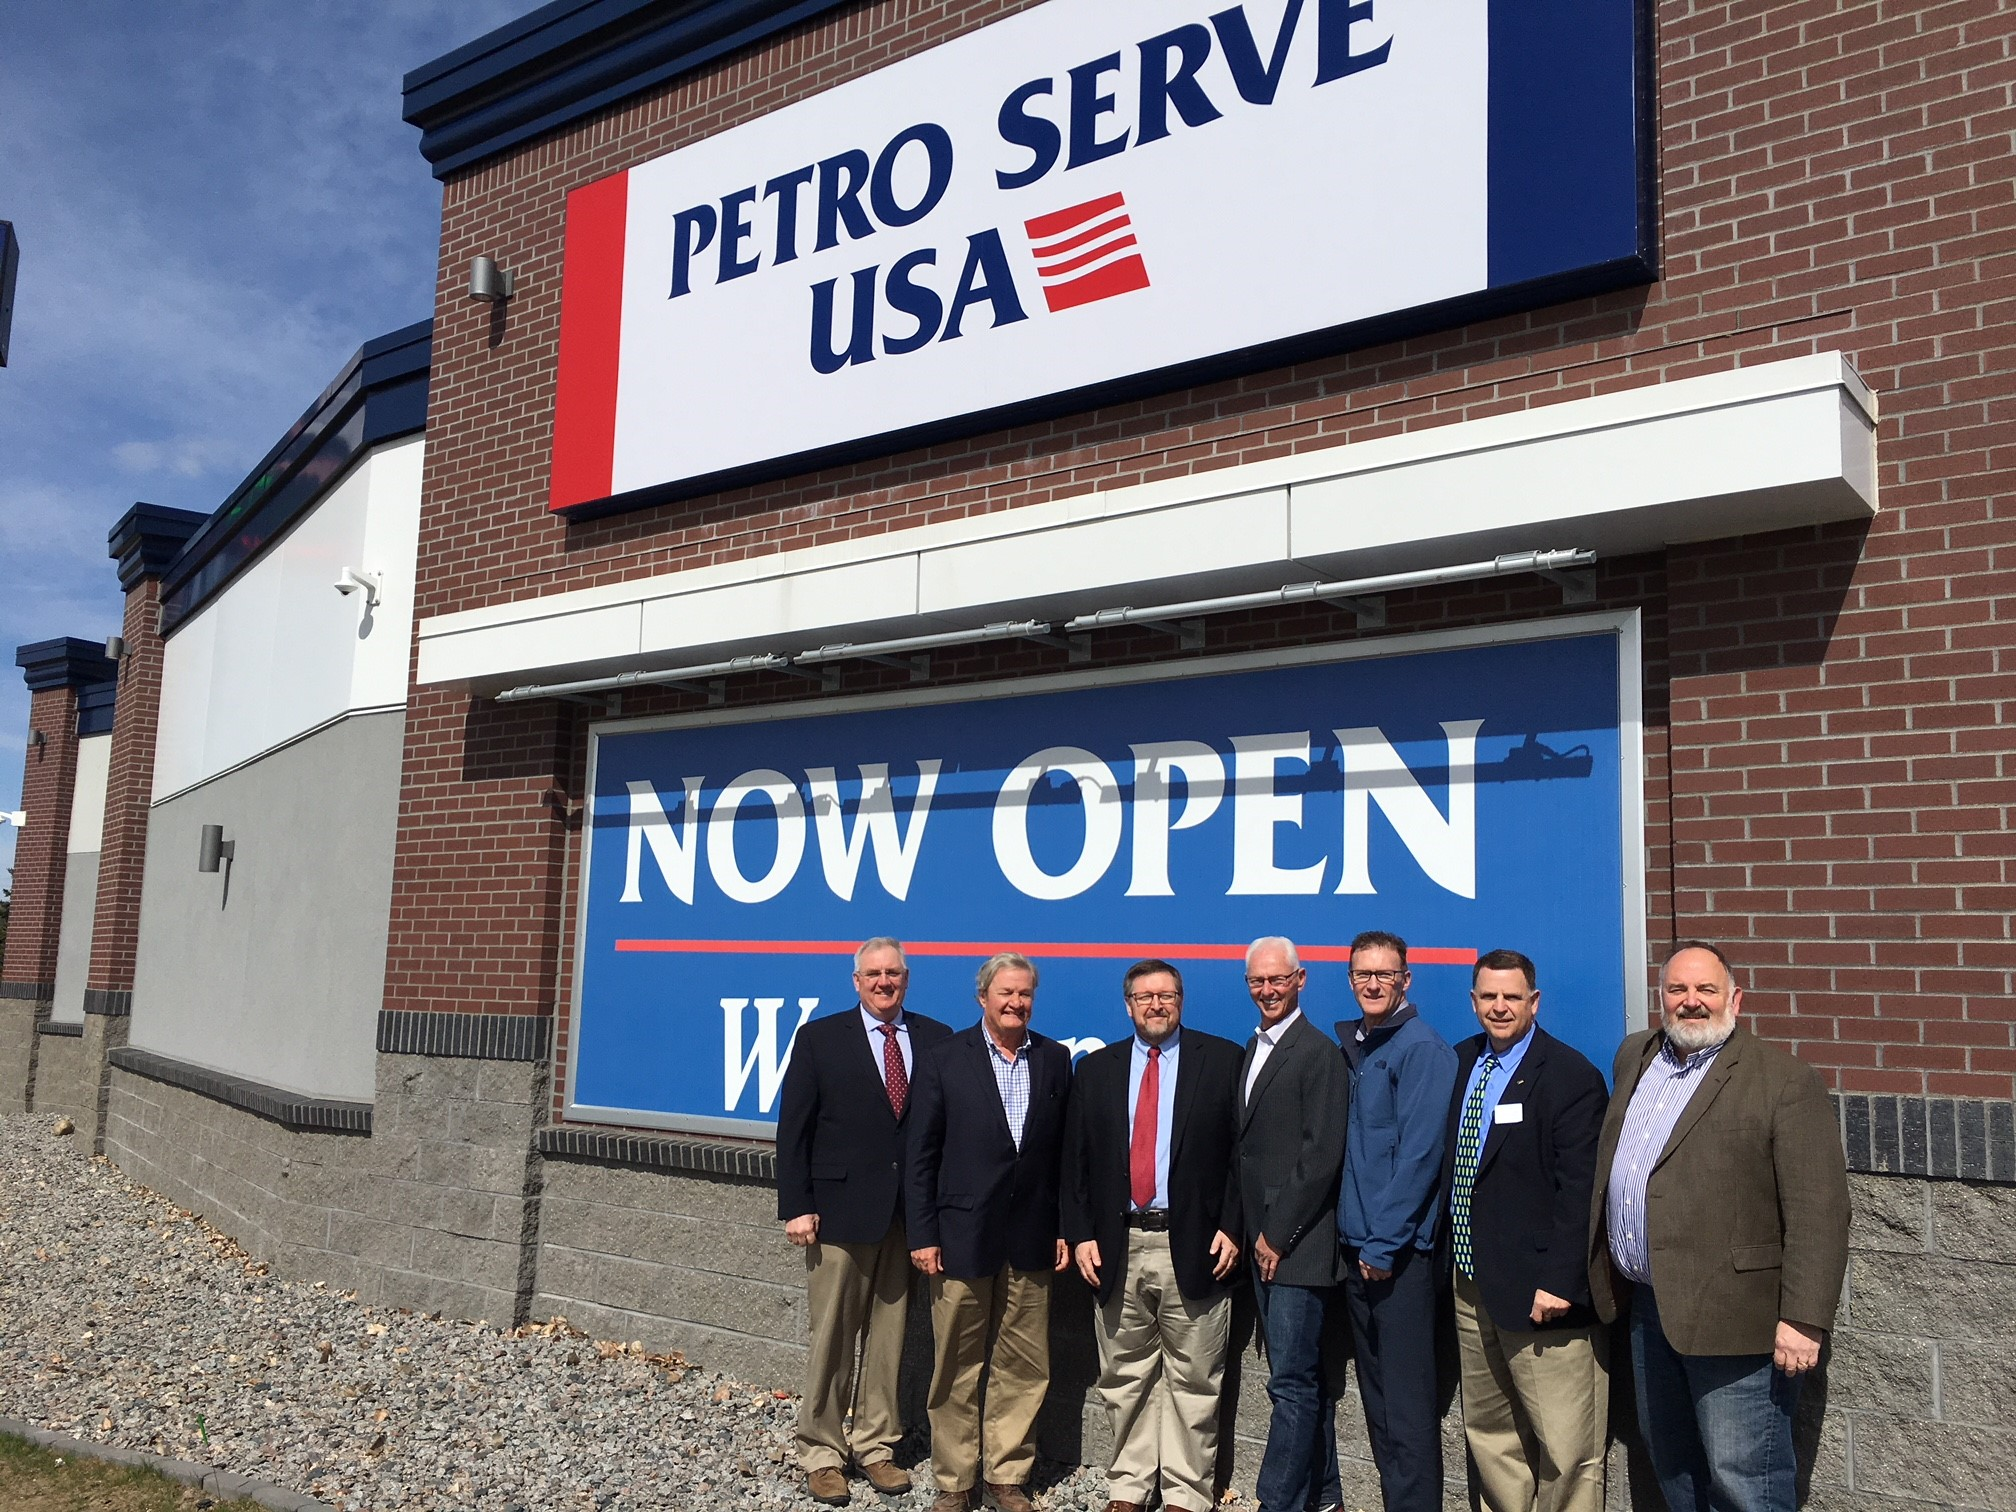 ACE congratulates Petro Serve USA on offering more ND consumers higher ethanol blends